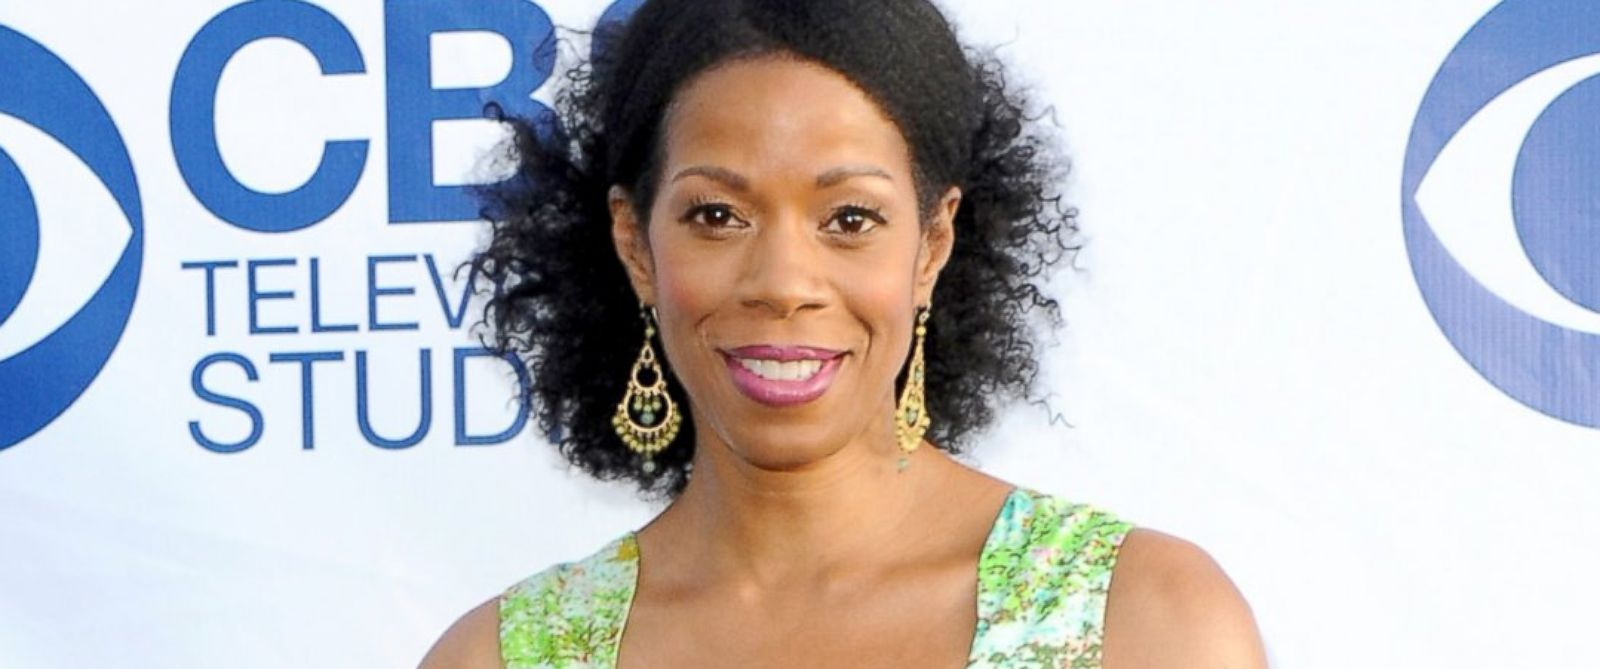 PHOTO: Kim Wayans arrives at the CBS Summer Soiree at The London West Hollywood, May 19, 2014, in West Hollywood, Calif.